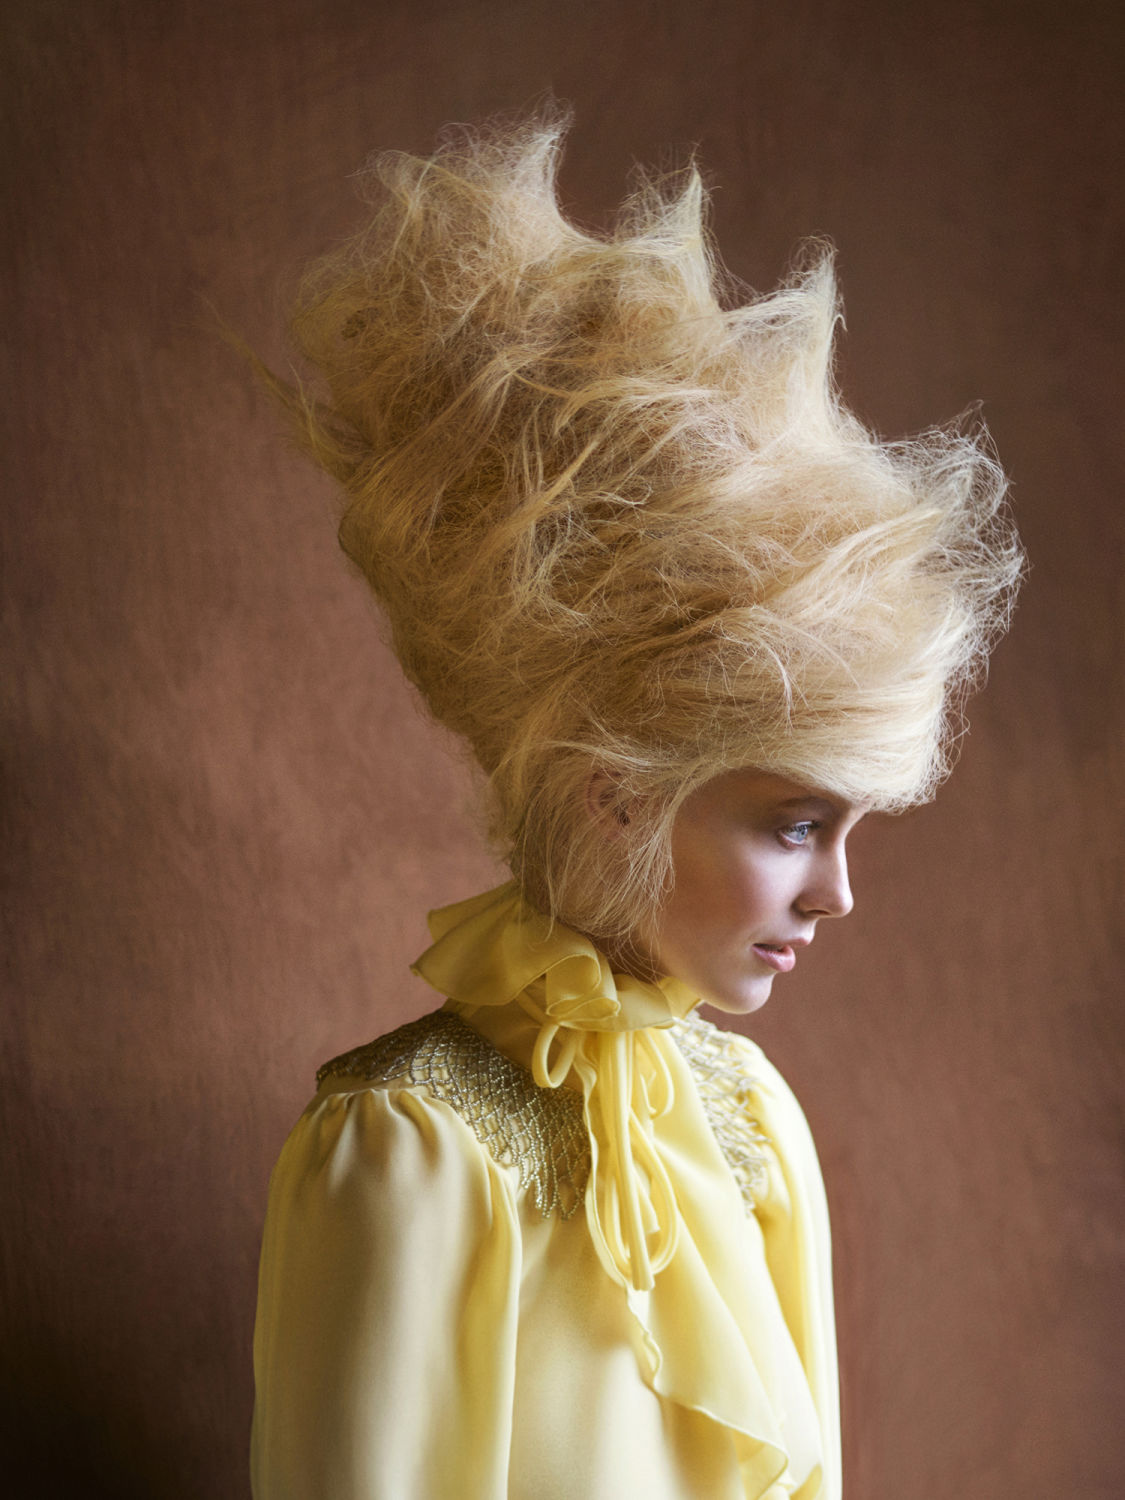 Hair by : Lars Eriksen - Styling by : Linda Sande - Model : Anoushka